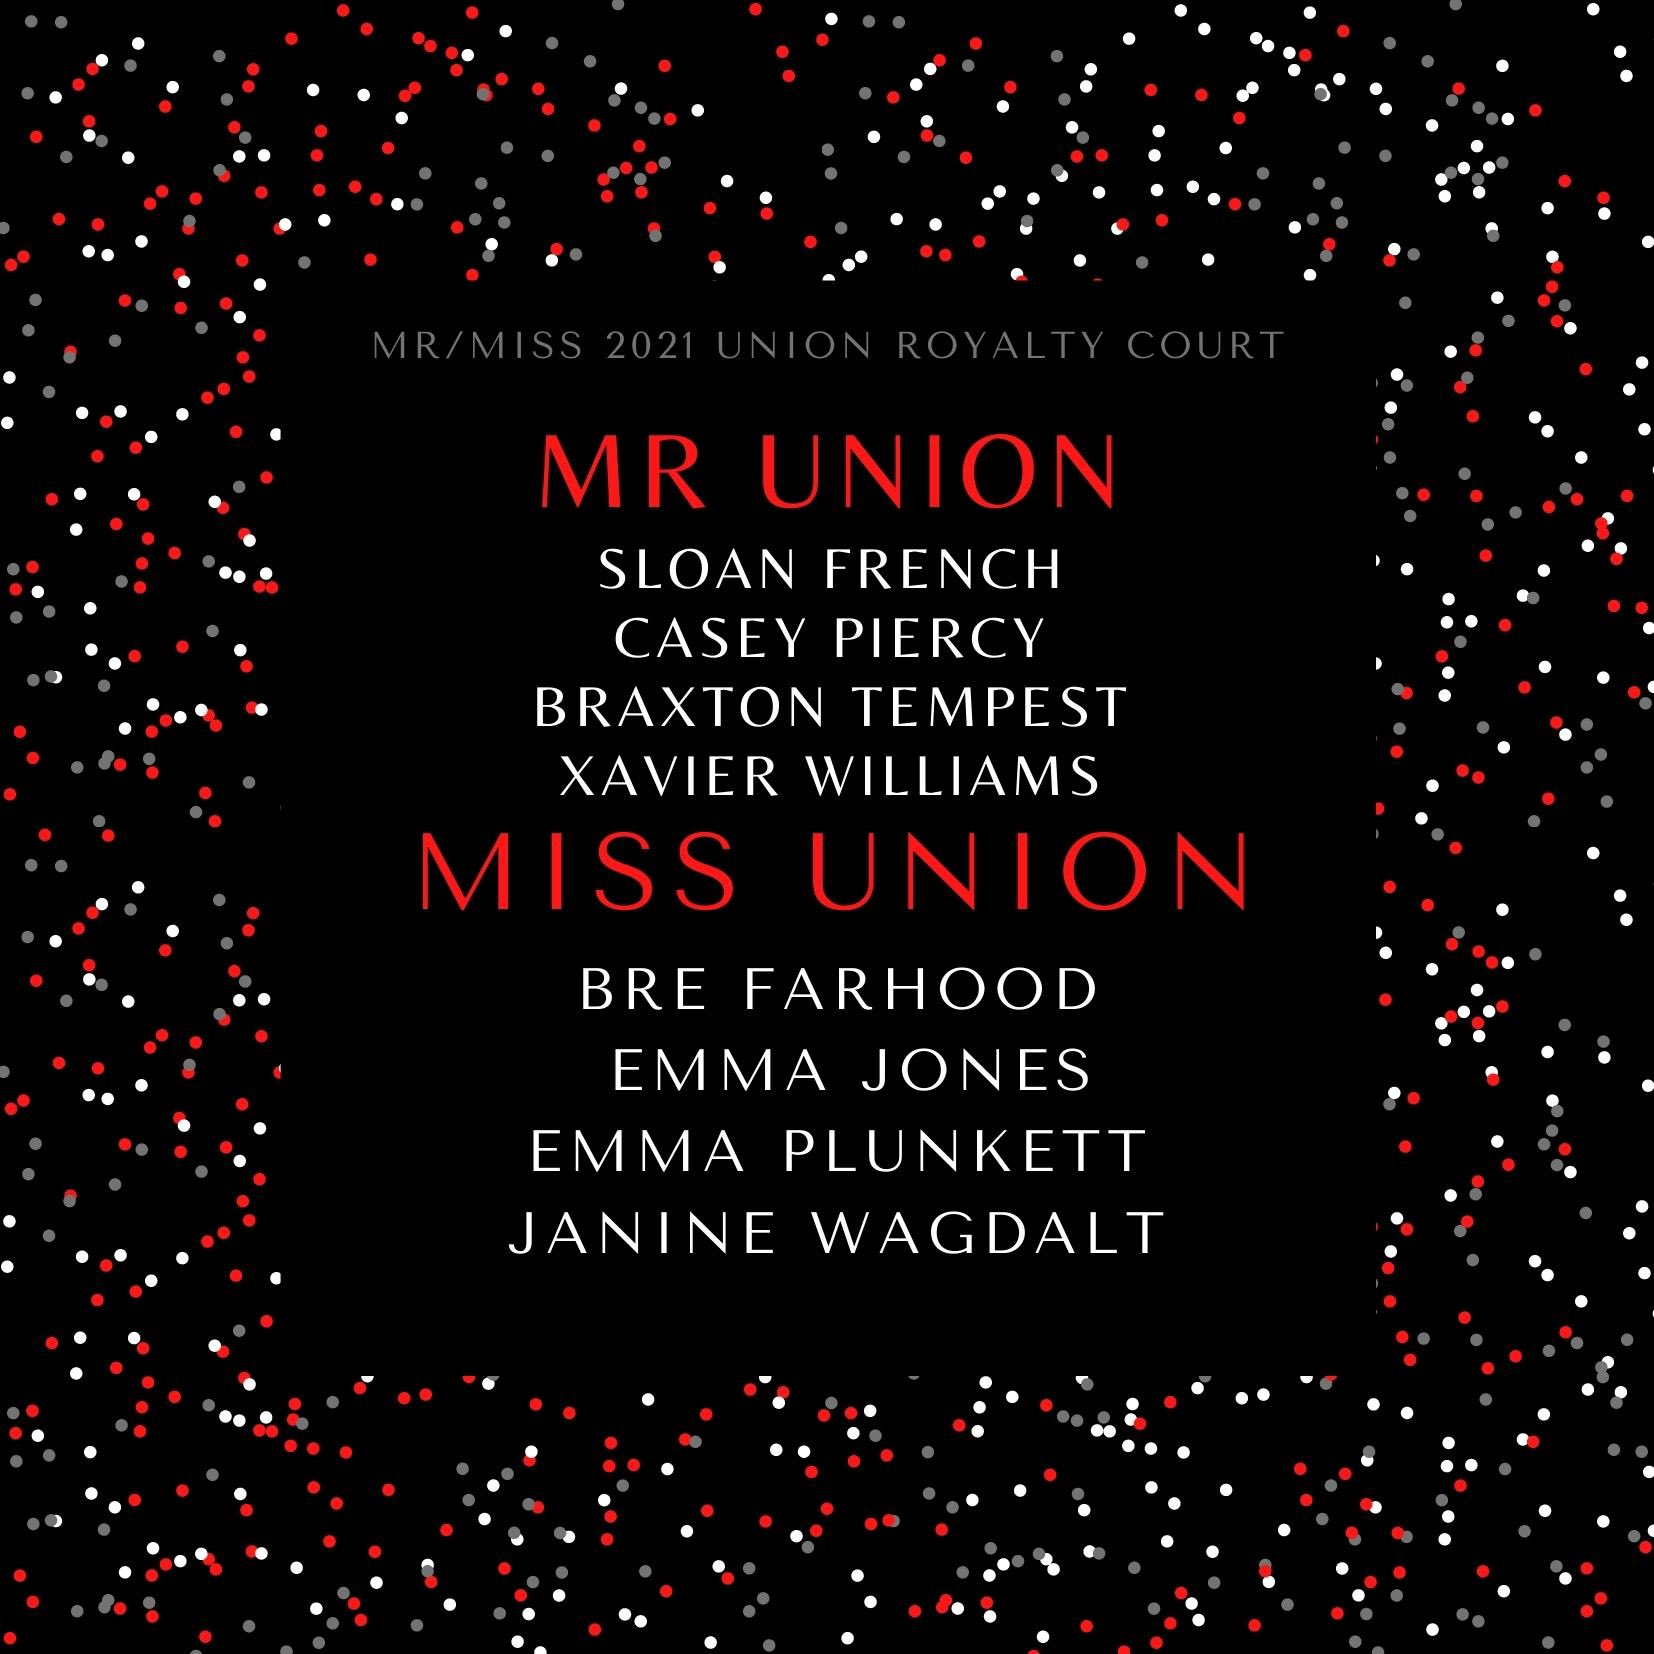 The annual Mr. and Miss Union Coronation will take place Friday morning, February 19 as a streaming event at the High School.   Mr. Union candidates are Sloan French, Casey Piercy, Braxton Tempest and Xavier Williams. Miss Union Candidates are Bre Farhood, Emma Jones, Emma Plunkett and Janine Wagdalt.